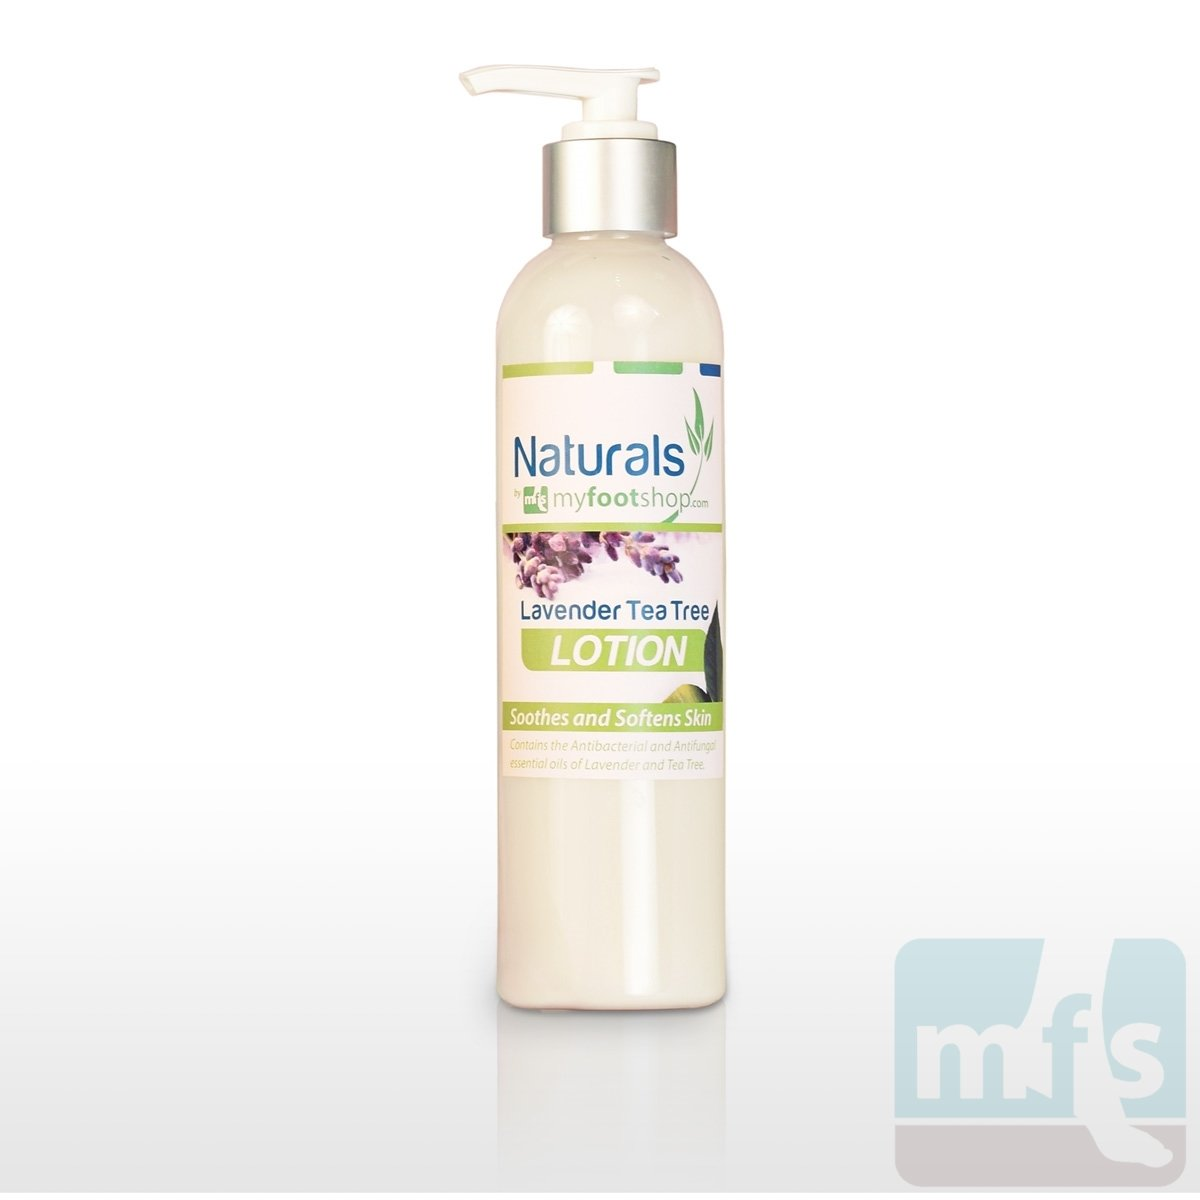 Natural Tea Tree and Lavender Lotion